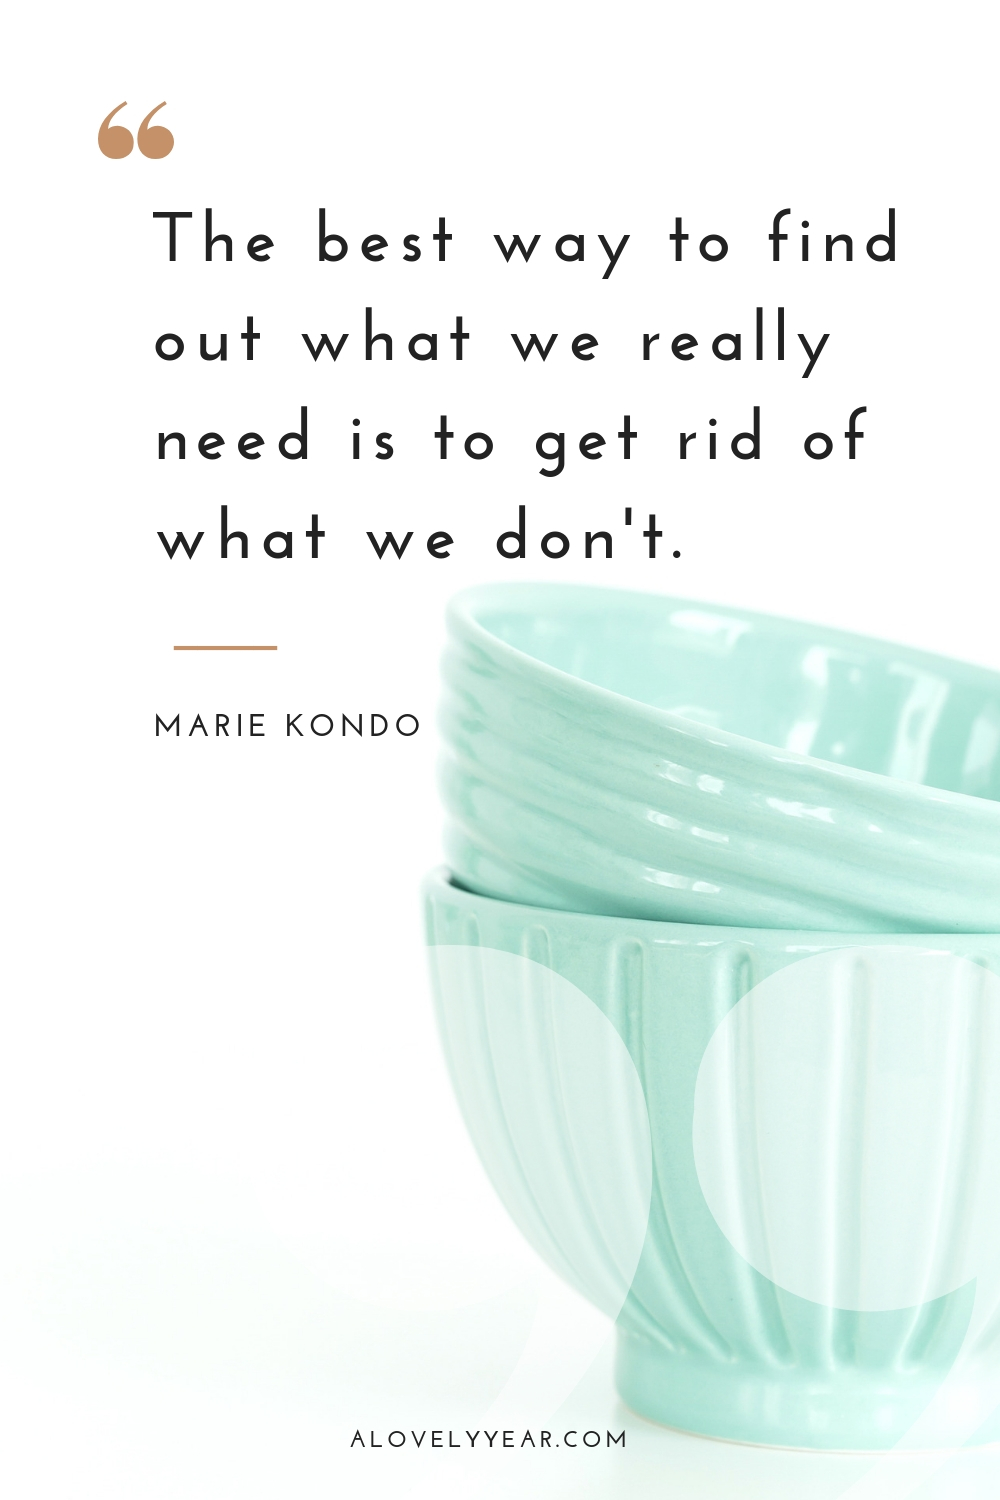 Decluttering quotes to motivate and inspire | The best way to find out what we really need is to get rid of what we don't ― Marie Kondo